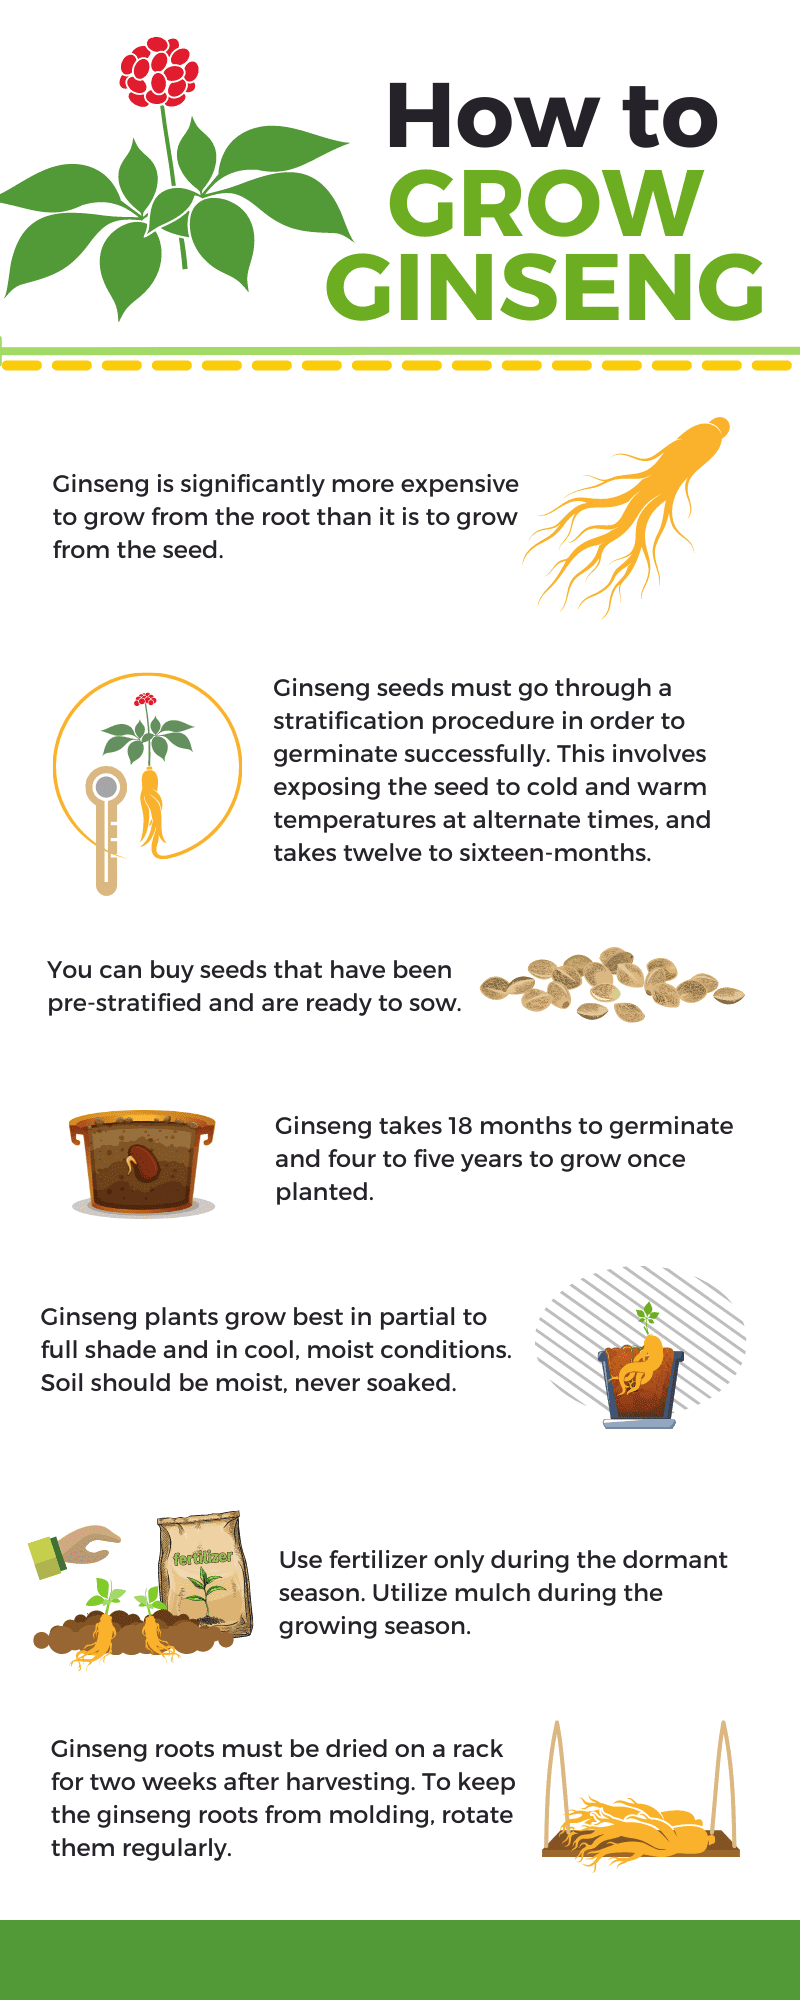 How to Grow Ginseng infographic